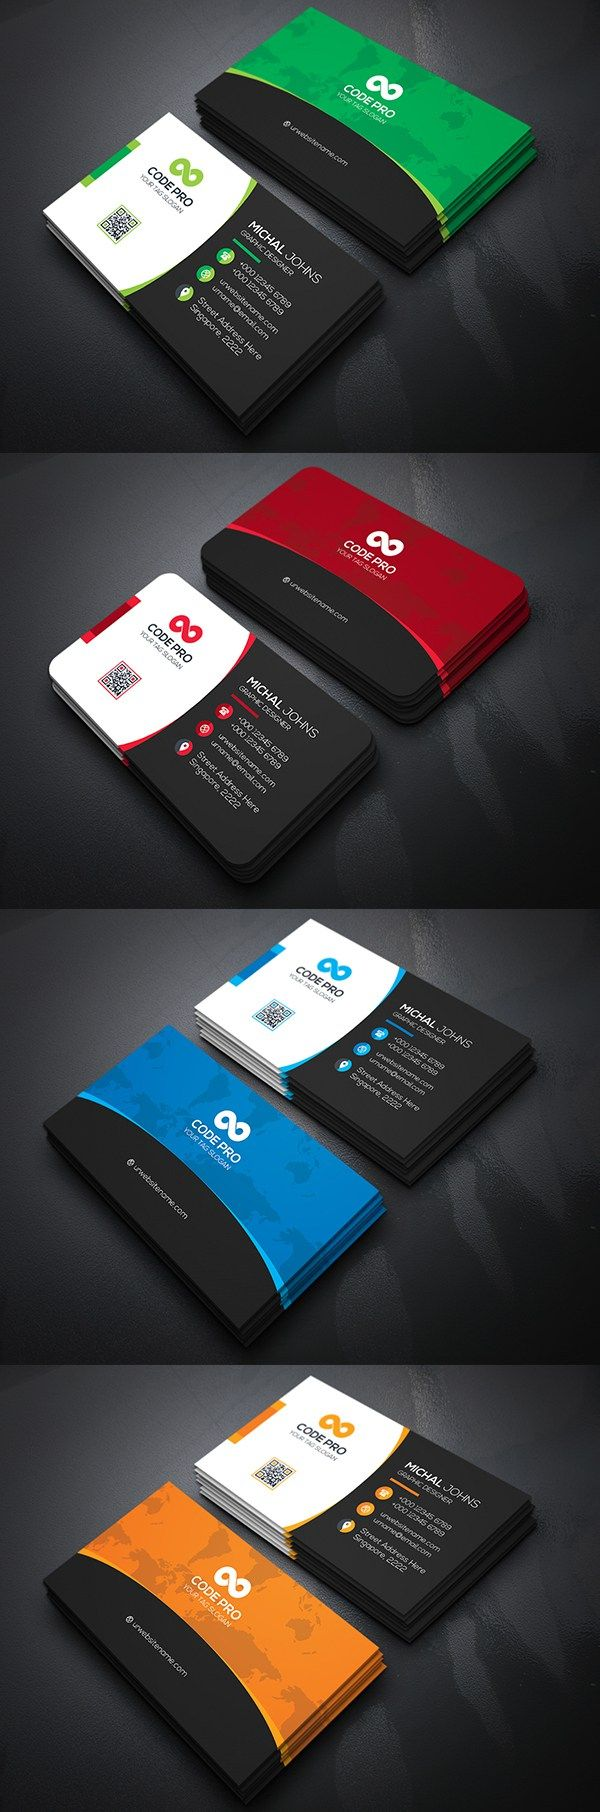 48 best print images on pinterest business cards visit cards and our unique business cards designs have been created to help you make your own business cards with ease all business cards are fully customizable and come reheart Images